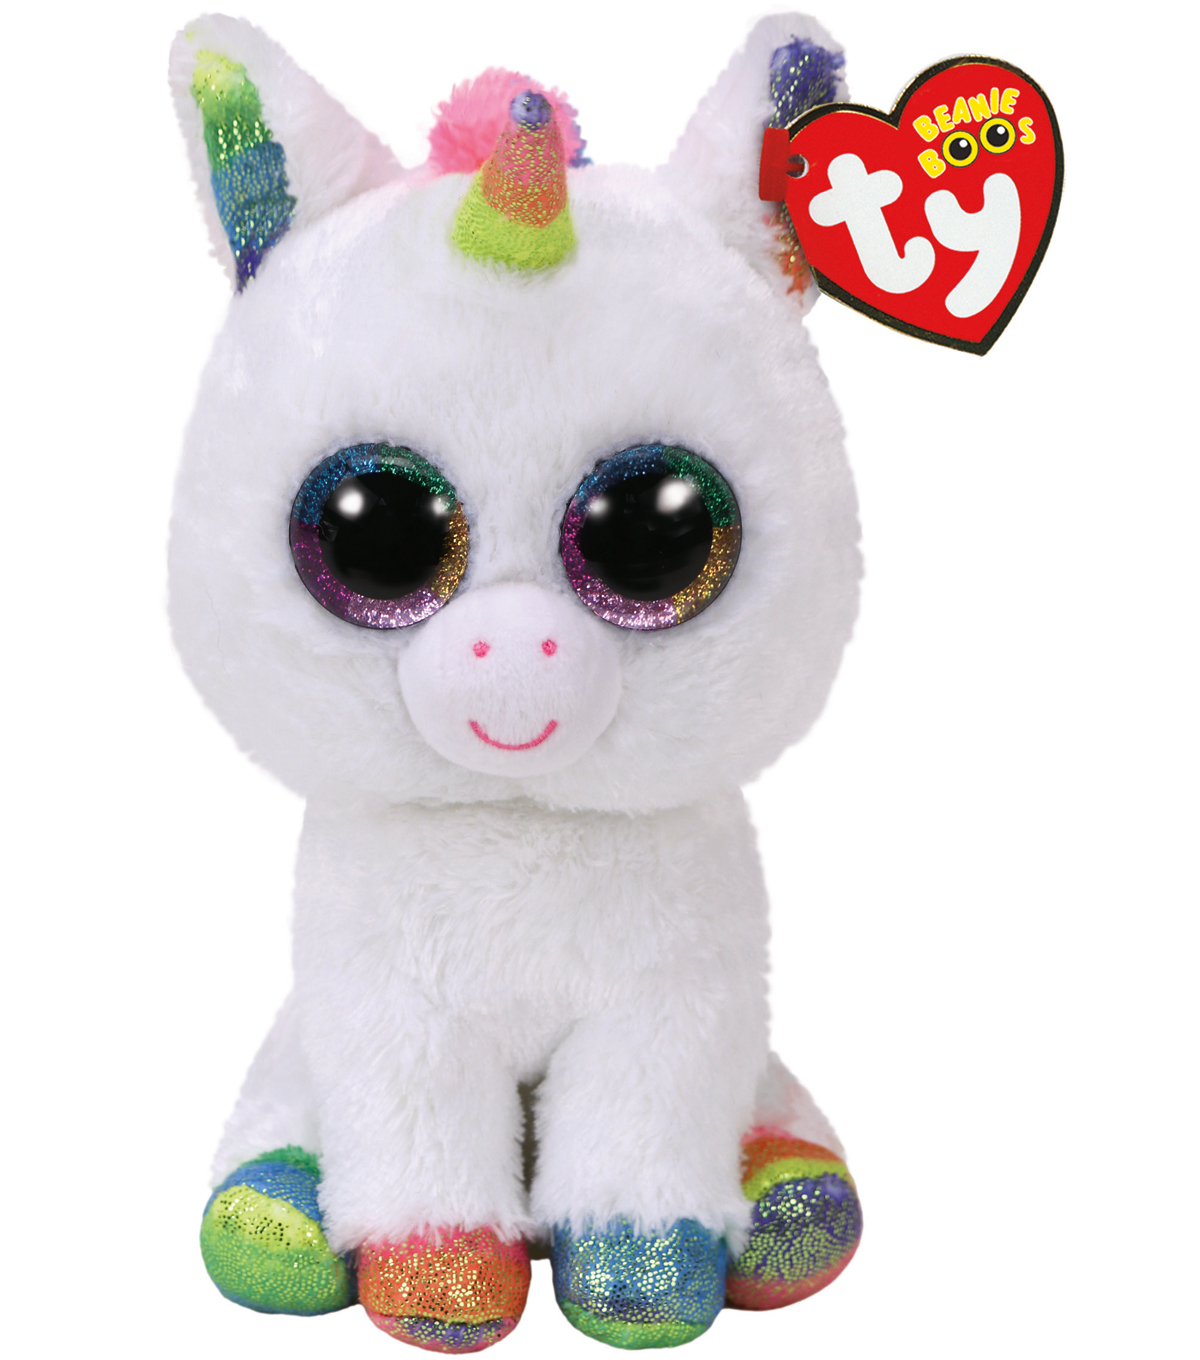 TY Beanie Boo White Unicorn-Pixie